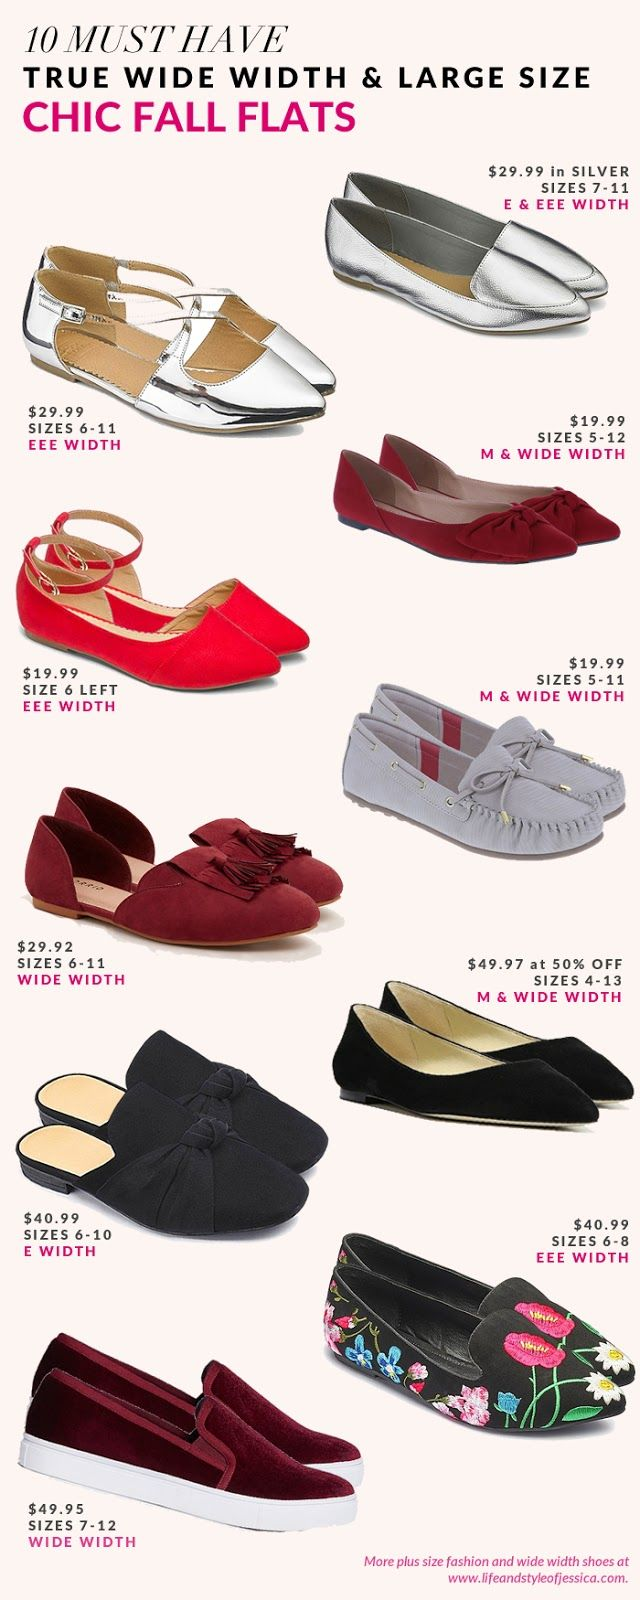 The queen of wide width and large size shoes just launched her annual must have flats list! <3